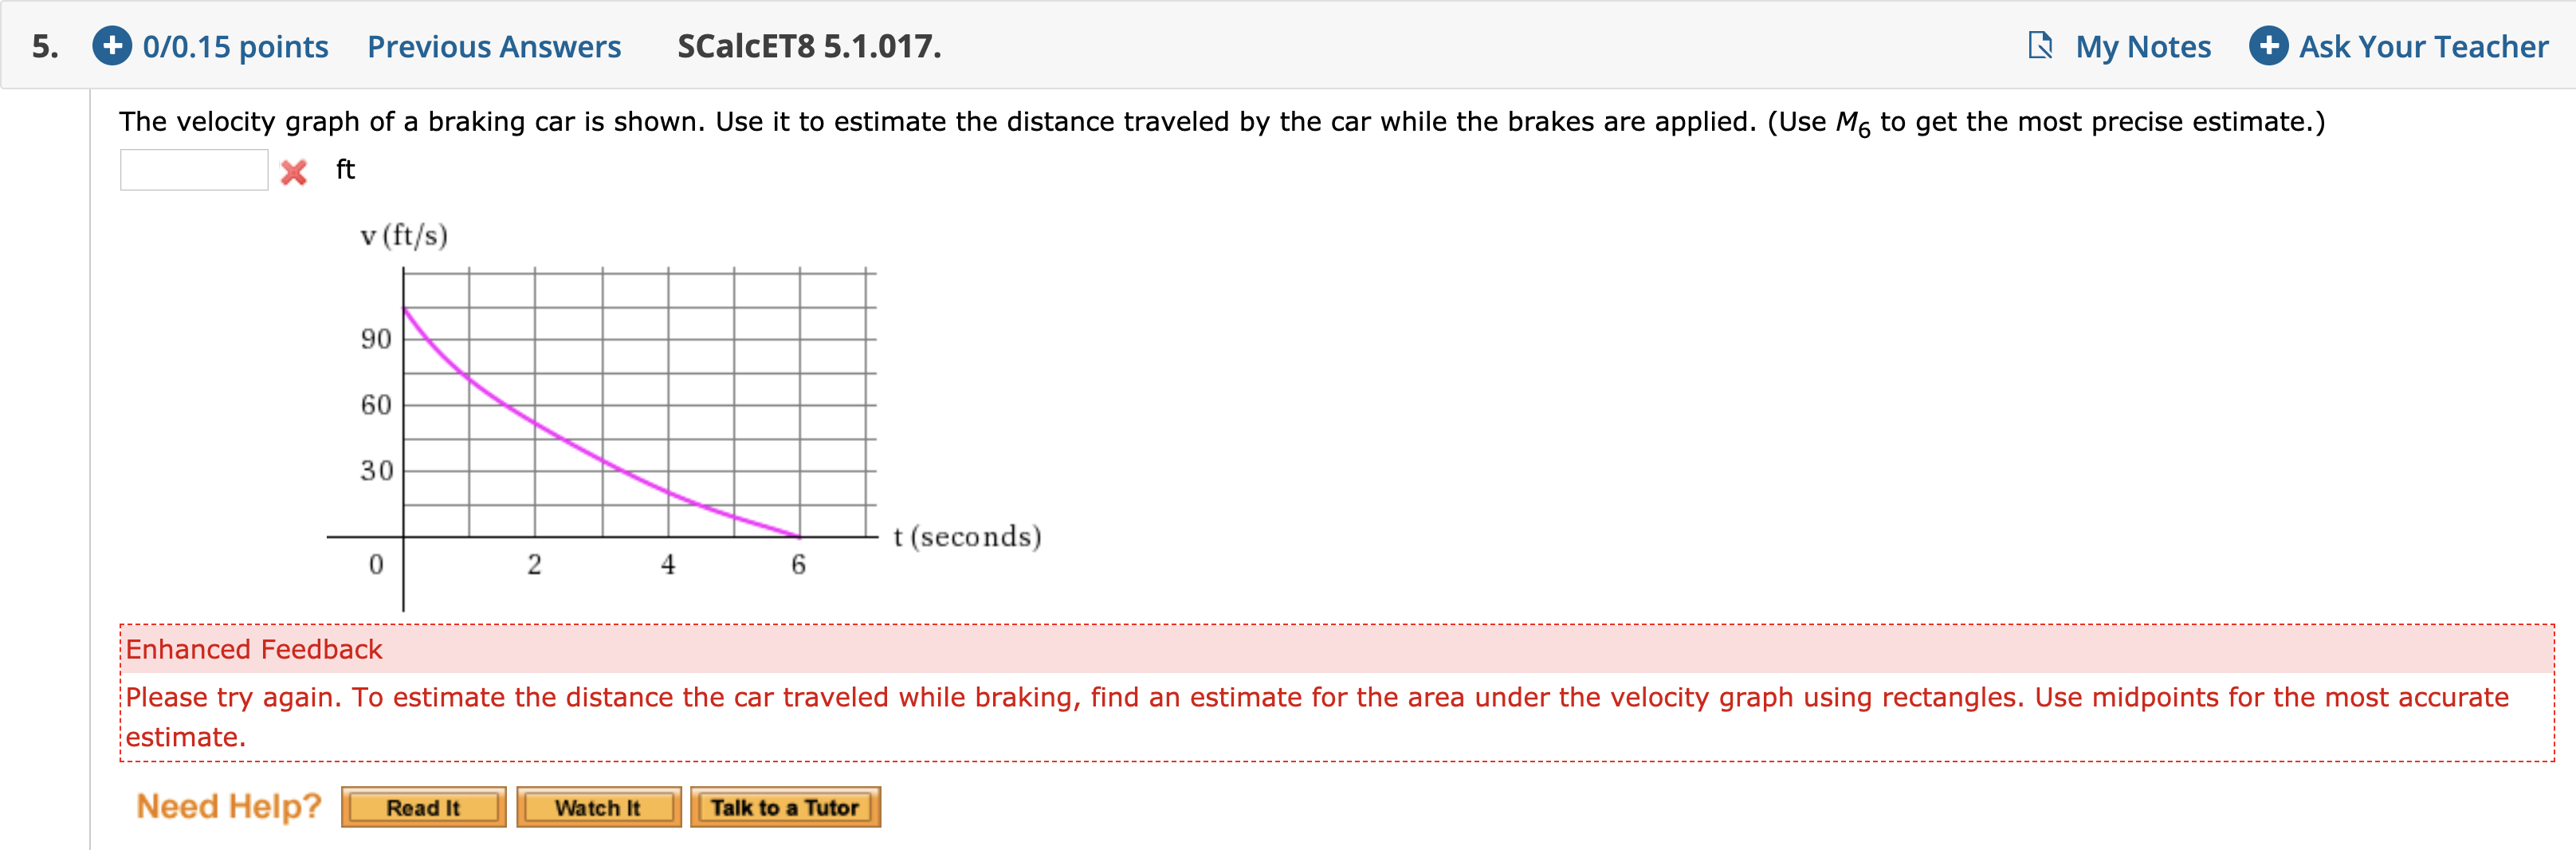 +0/0.15 points Previous Answers Ask Your Teacher SCalcET8 5.1.017. My Notes 5. The velocity graph of a braking car is shown. Use it to estimate the distance traveled by the car while the brakes are applied. (Use M6 to get the most precise estimate.) X ft v (ft/s) 90 60 30 t (seconds) 2 4 6 Enhanced Feedback Please try again. To estimate the distance the car traveled while braking, find an estimate for the area under the velocity graph using rectangles. Use midpoints for the most accurate estimate Need Help? Read It Talk to a Tutor Watch It